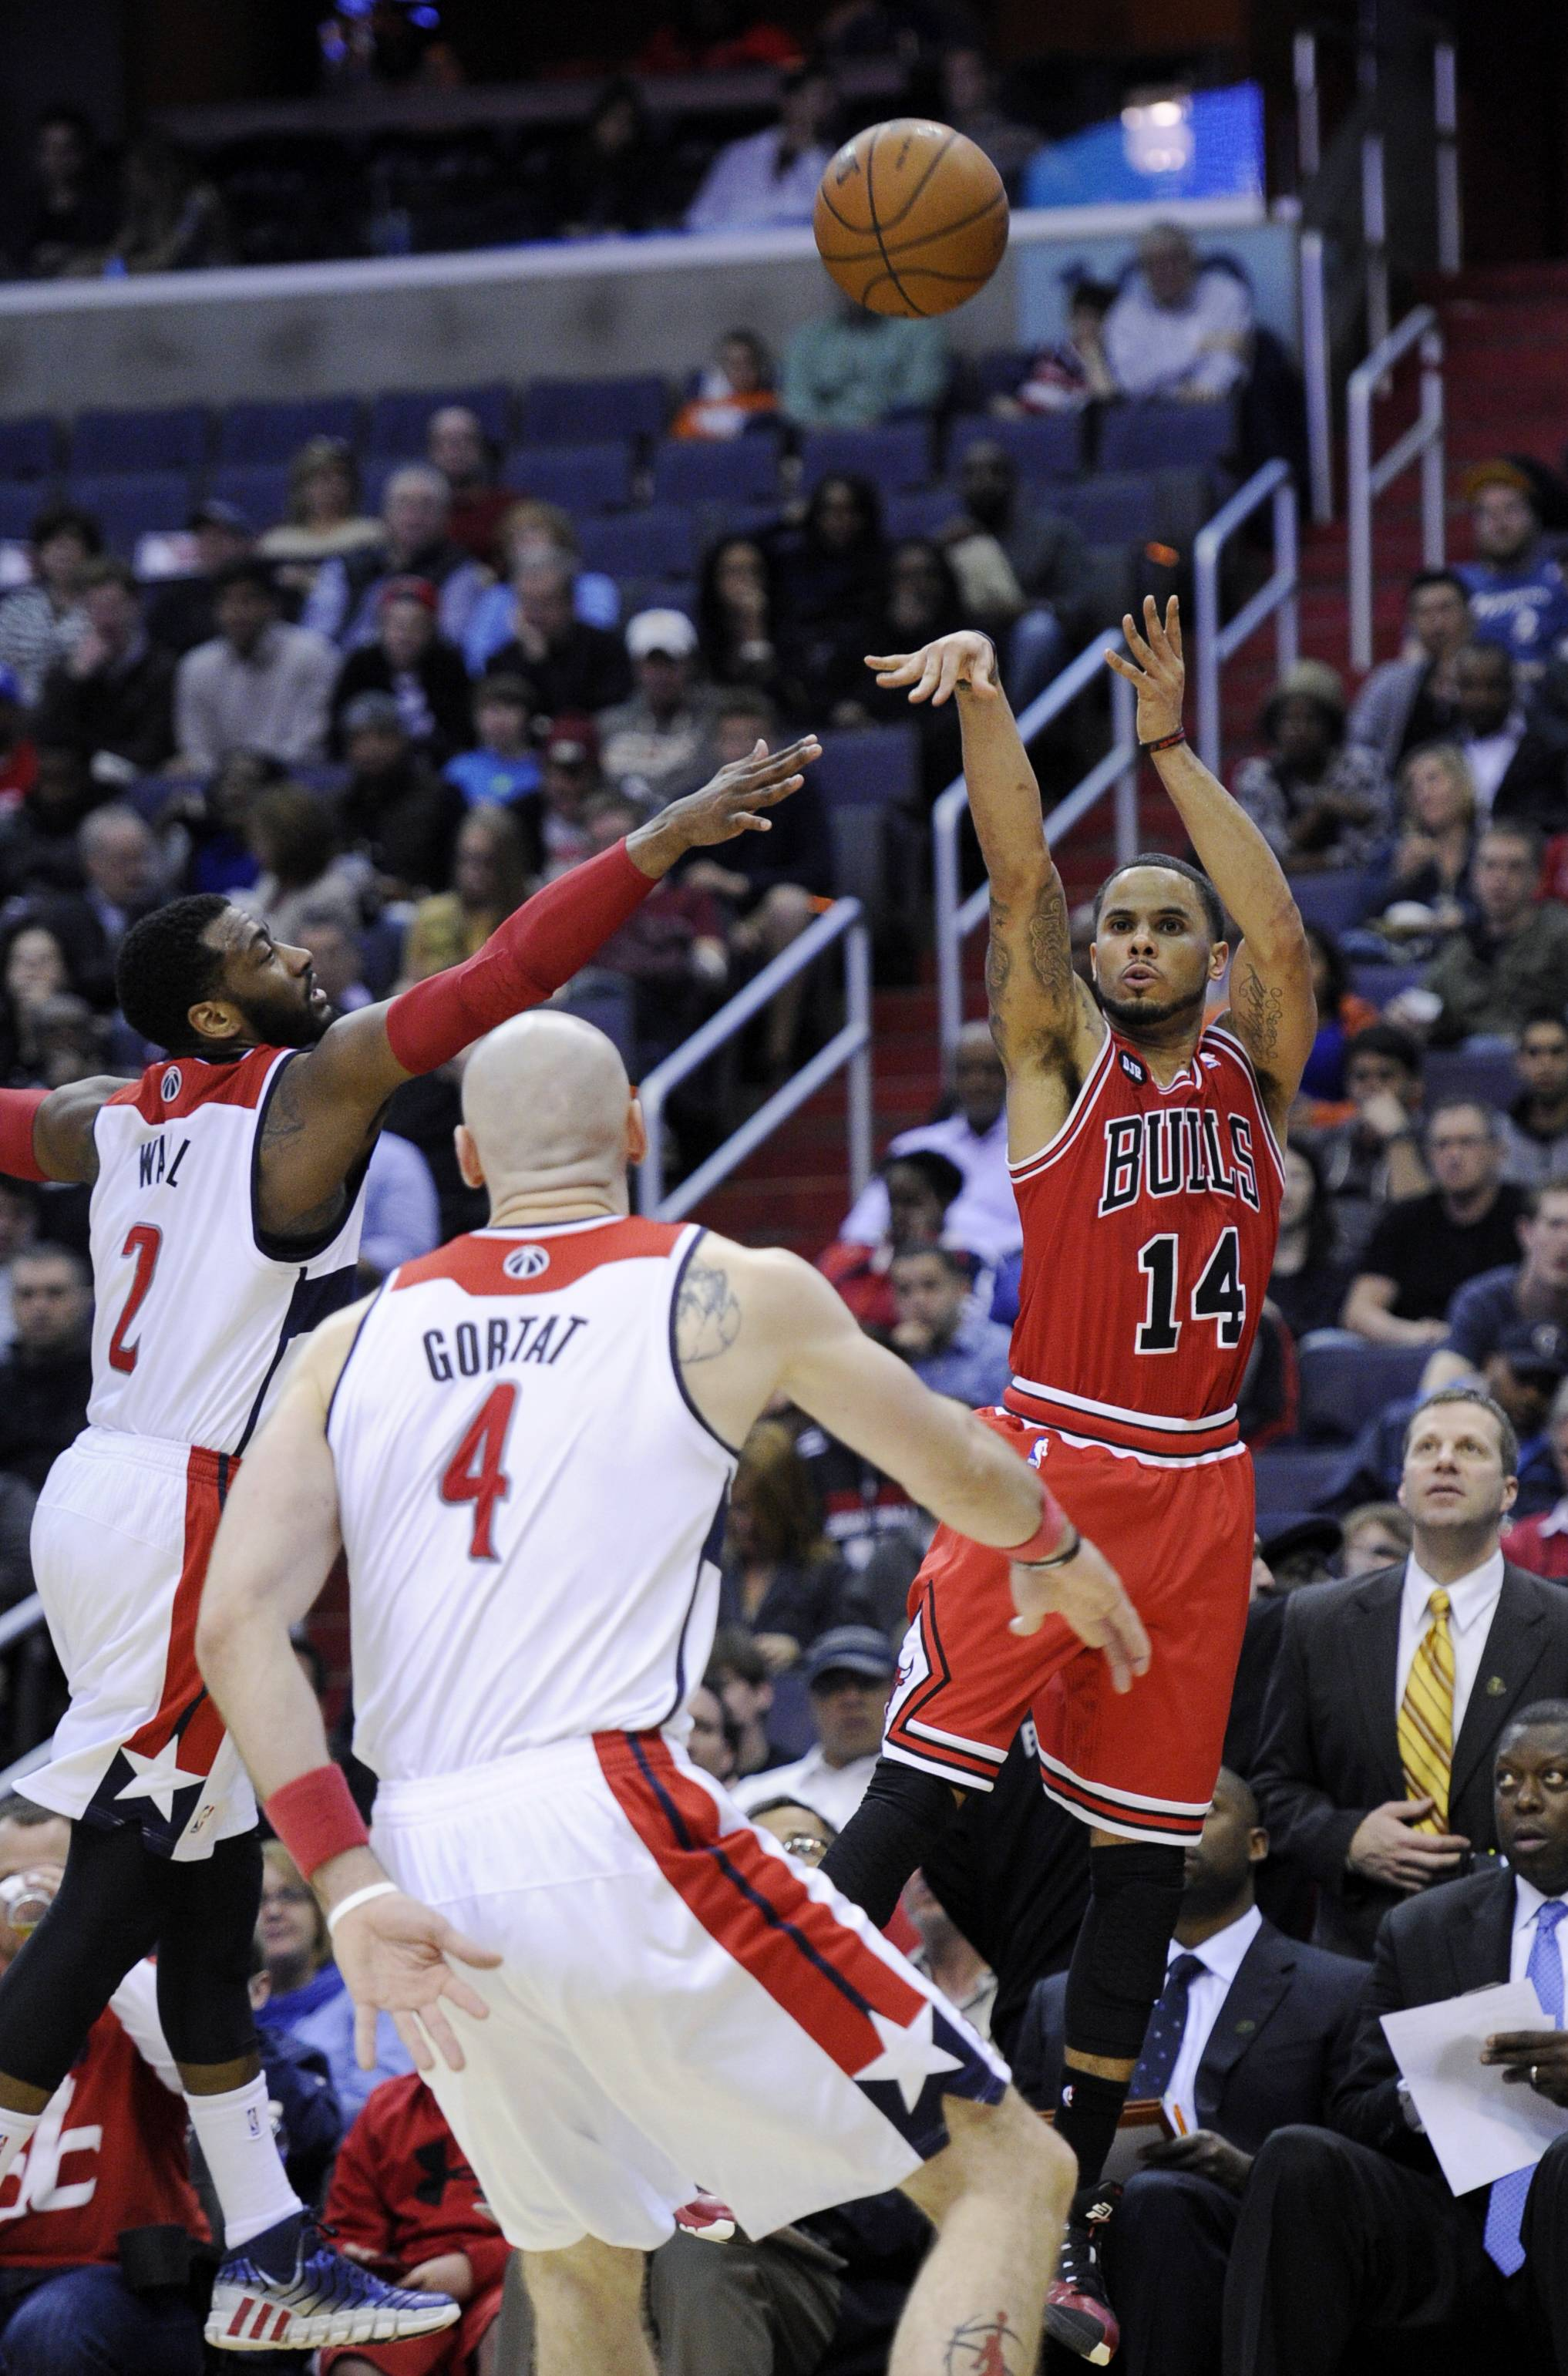 Bulls guard D.J. Augustin (14) takes a shot against Washington Wizards' John Wall (2) and Marcin Gortat (4), of Poland, during the first half of an NBA basketball game, Saturday, April 5, 2014, in Washington. The Bulls won 96-78.